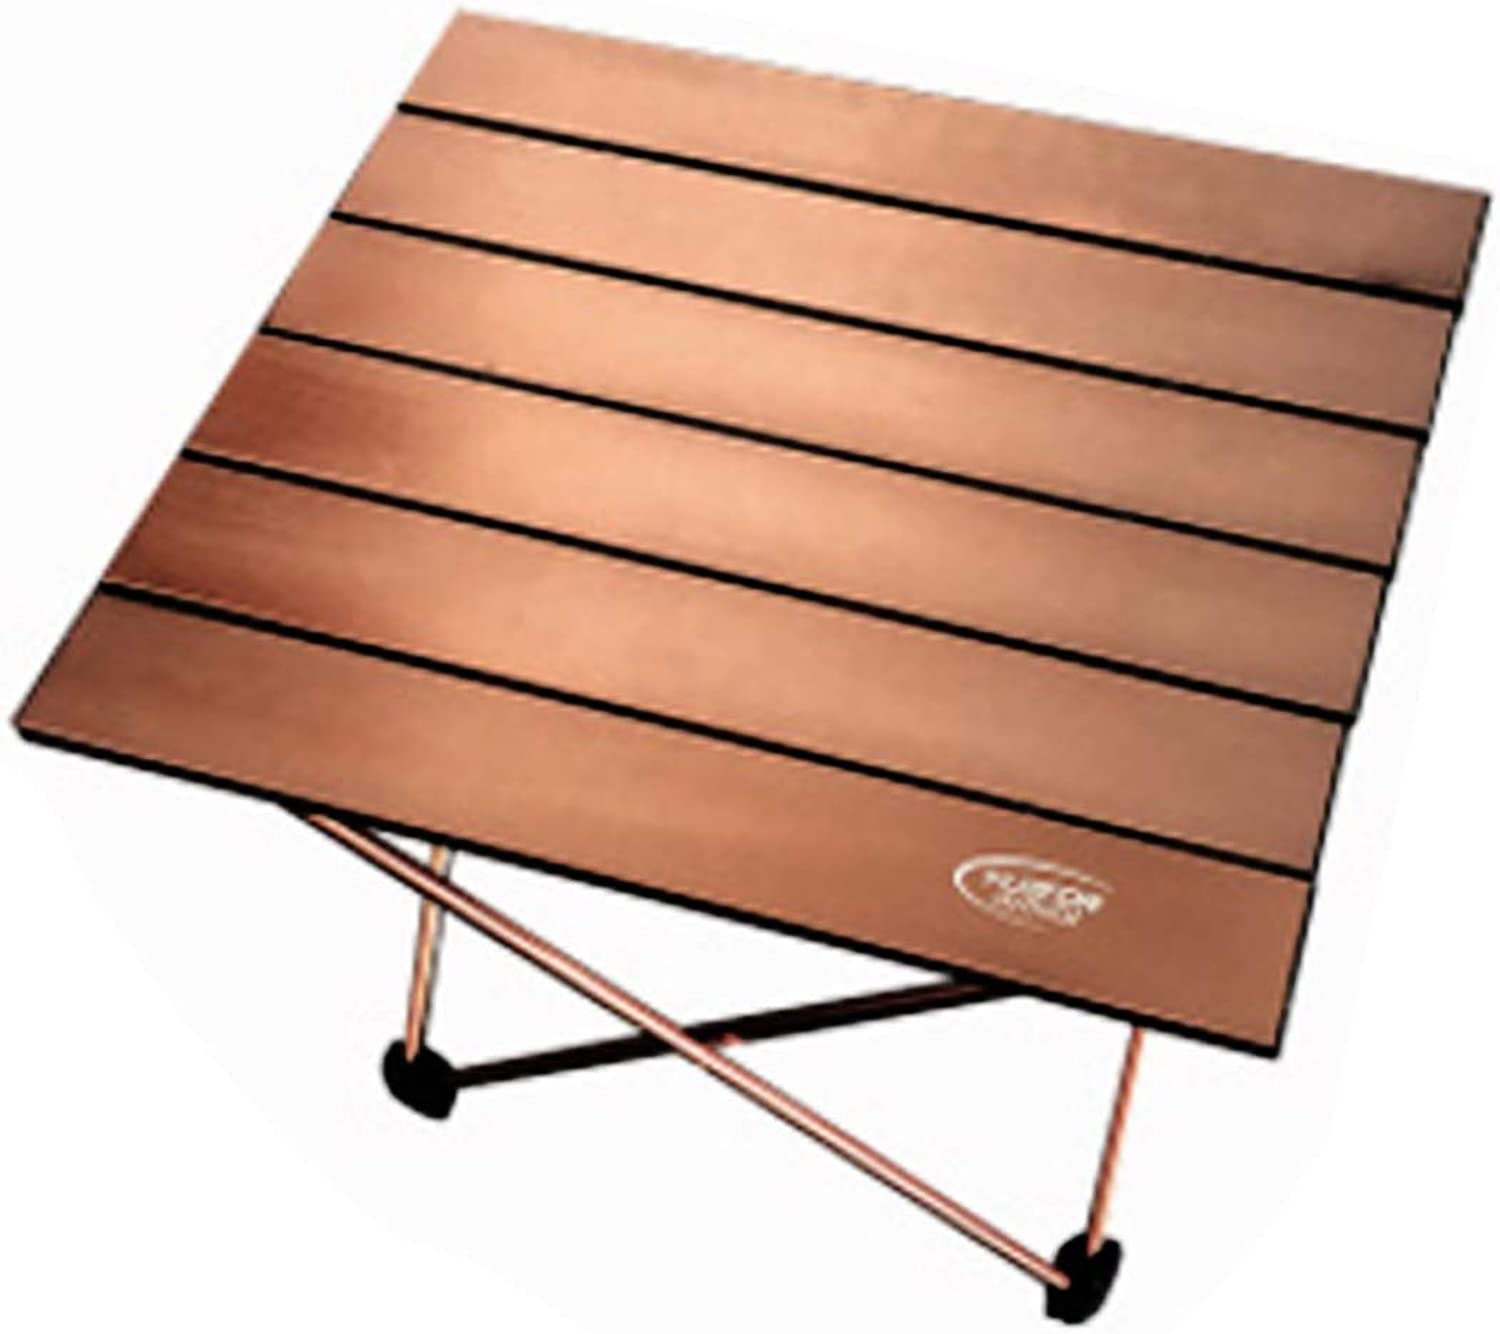 Hamm YHM Outdoor Camping Portable Light Folding Table Aviation Aluminum Picnic Barbecue Table Small Size 39.5x34.5x32.5cm (Coffee)